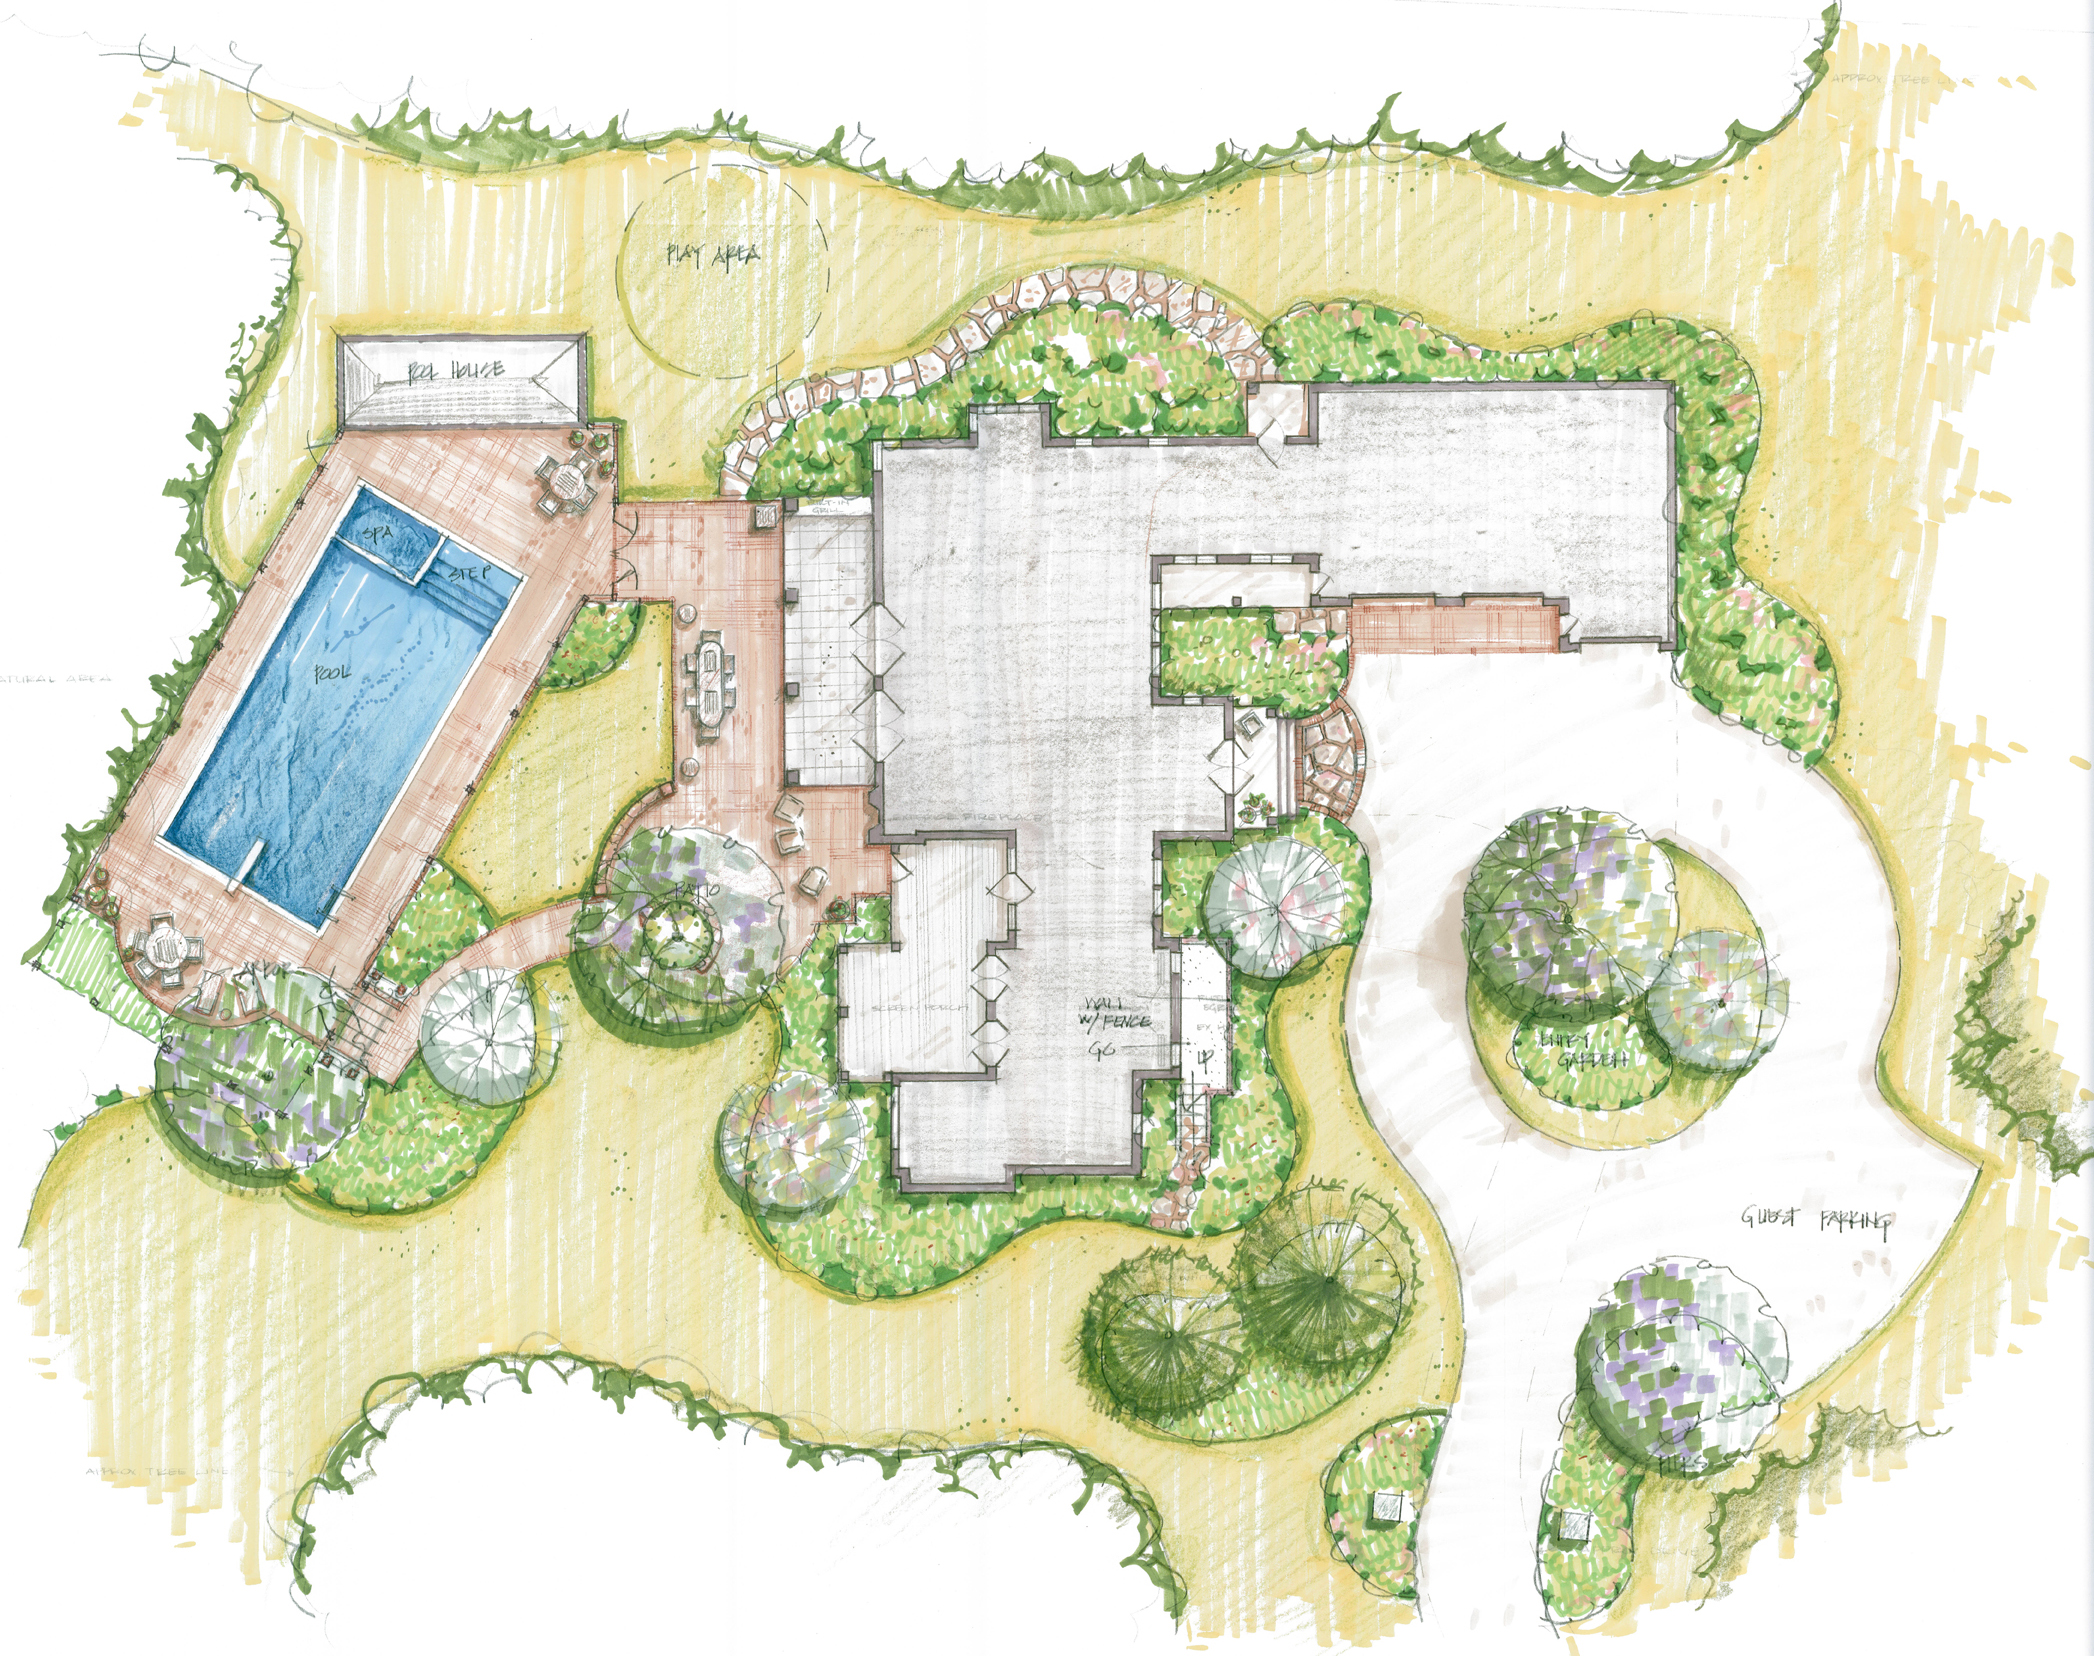 5 simple reasons to plan your landscape design landscape for Landscape and design